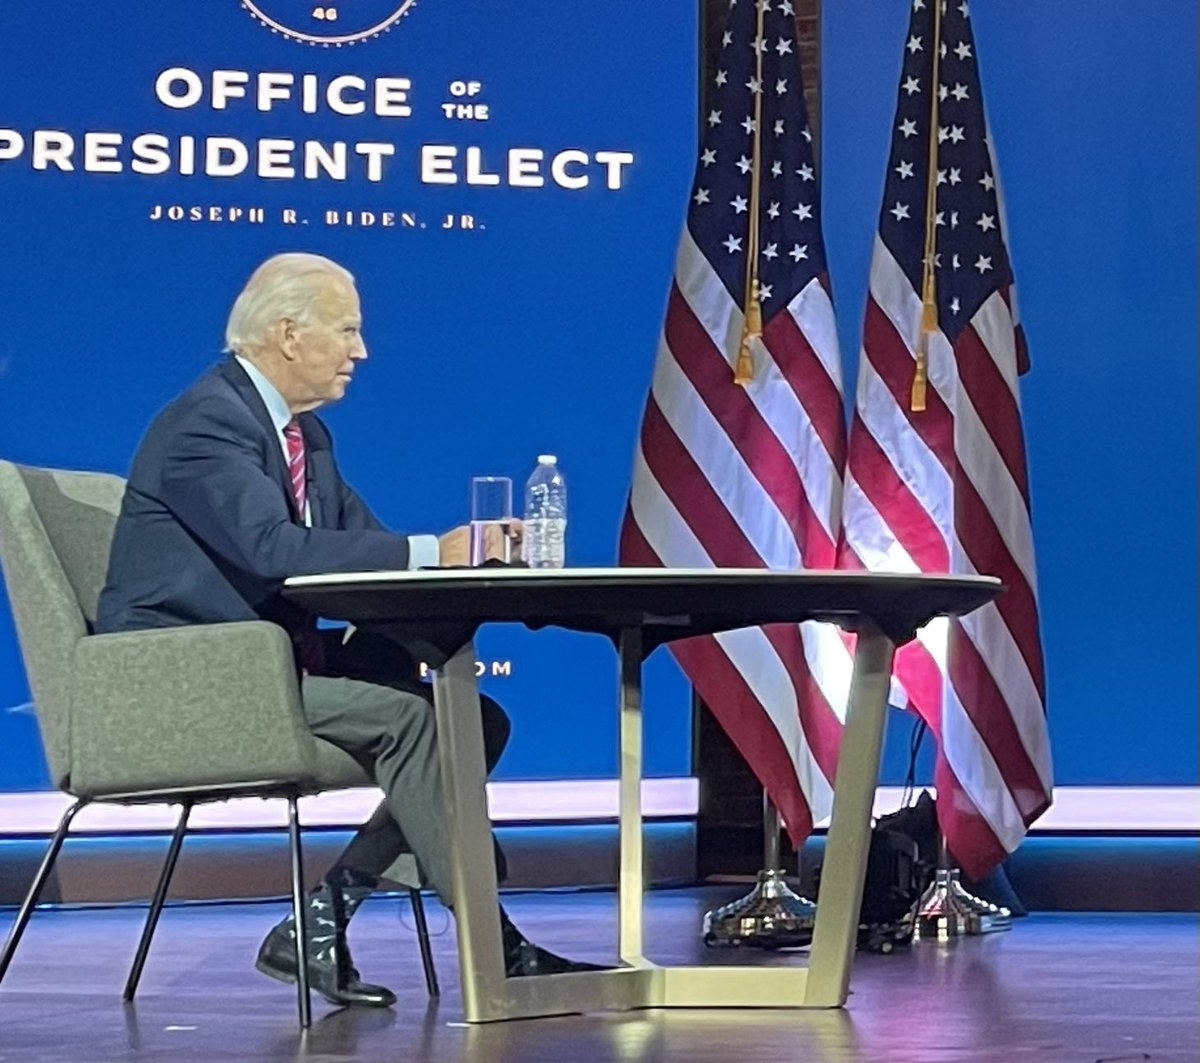 George H.W. Bush was known for his socks, maybe Biden will be too? Today he wore dark blue socks adorned with lighter blue dogs. (Yes, there are plenty of more substantive things to tweet about but we can have some fun sometimes too.)